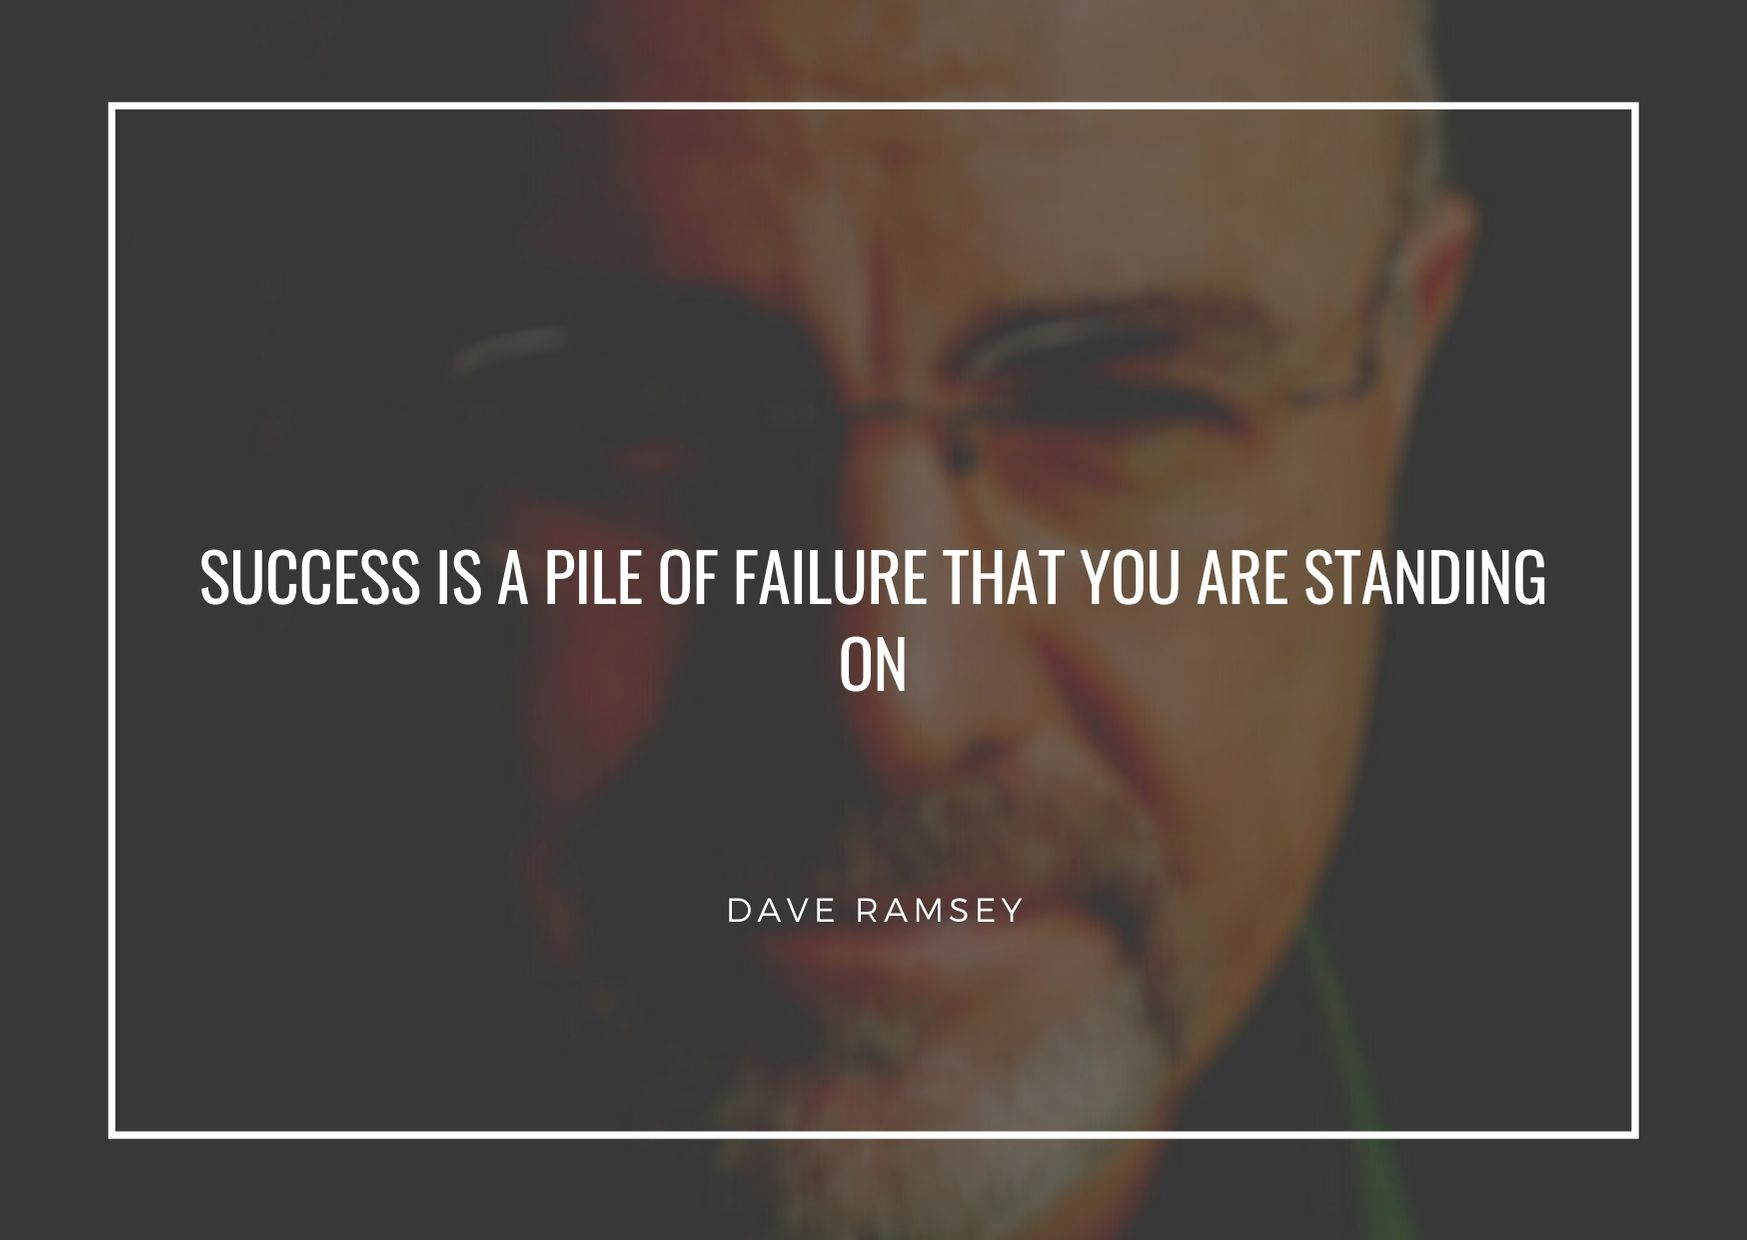 Inspirational Dave Ramsey Quotes